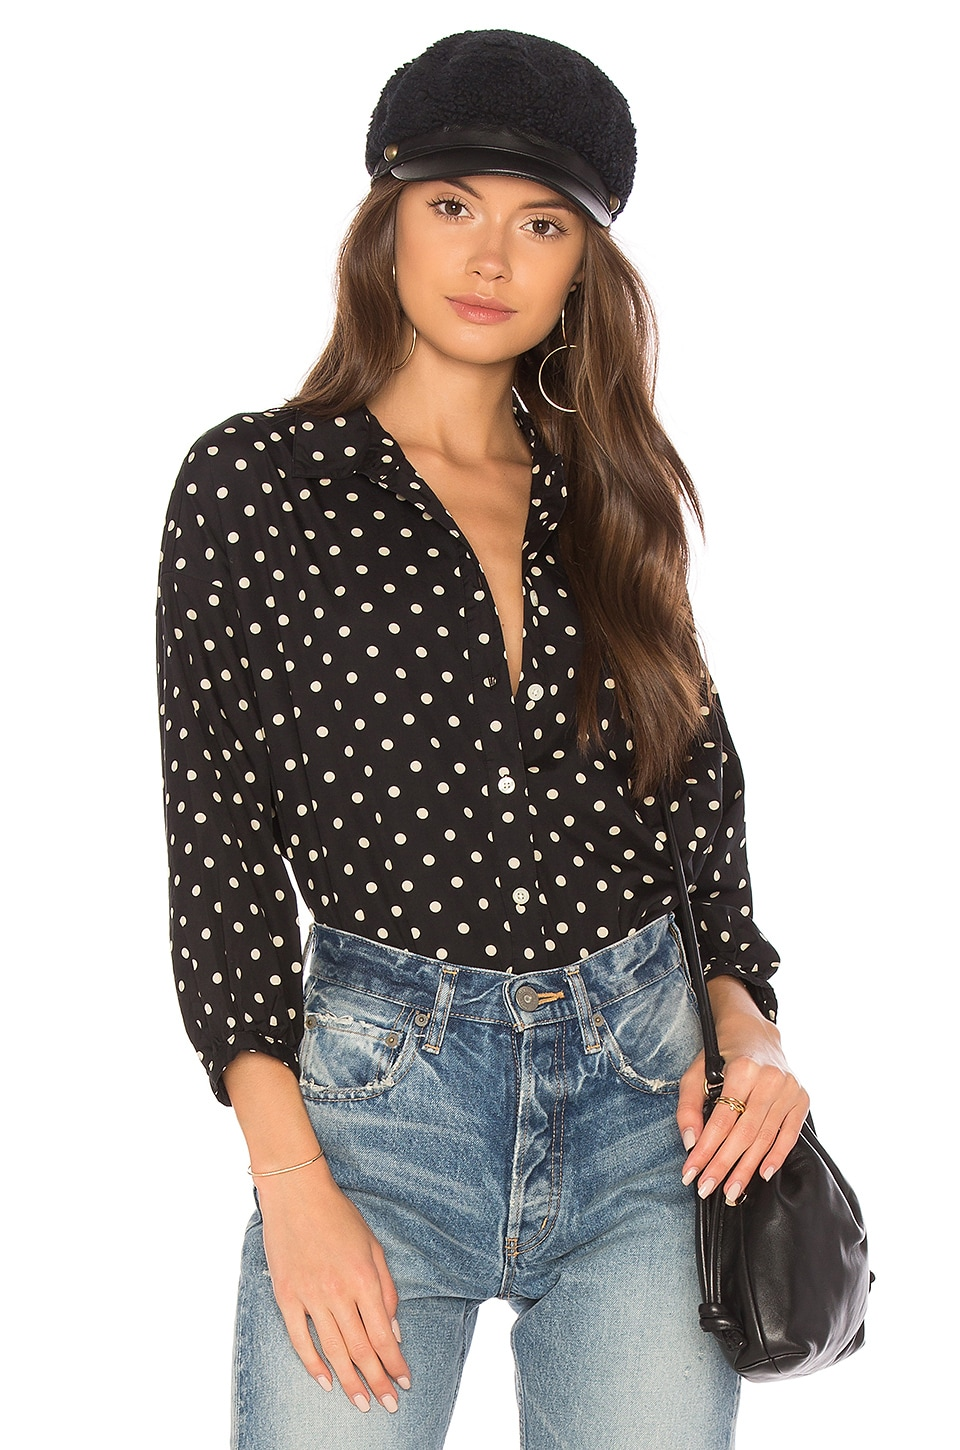 The Great The Easy Button Up in Pillbox Polka Dot